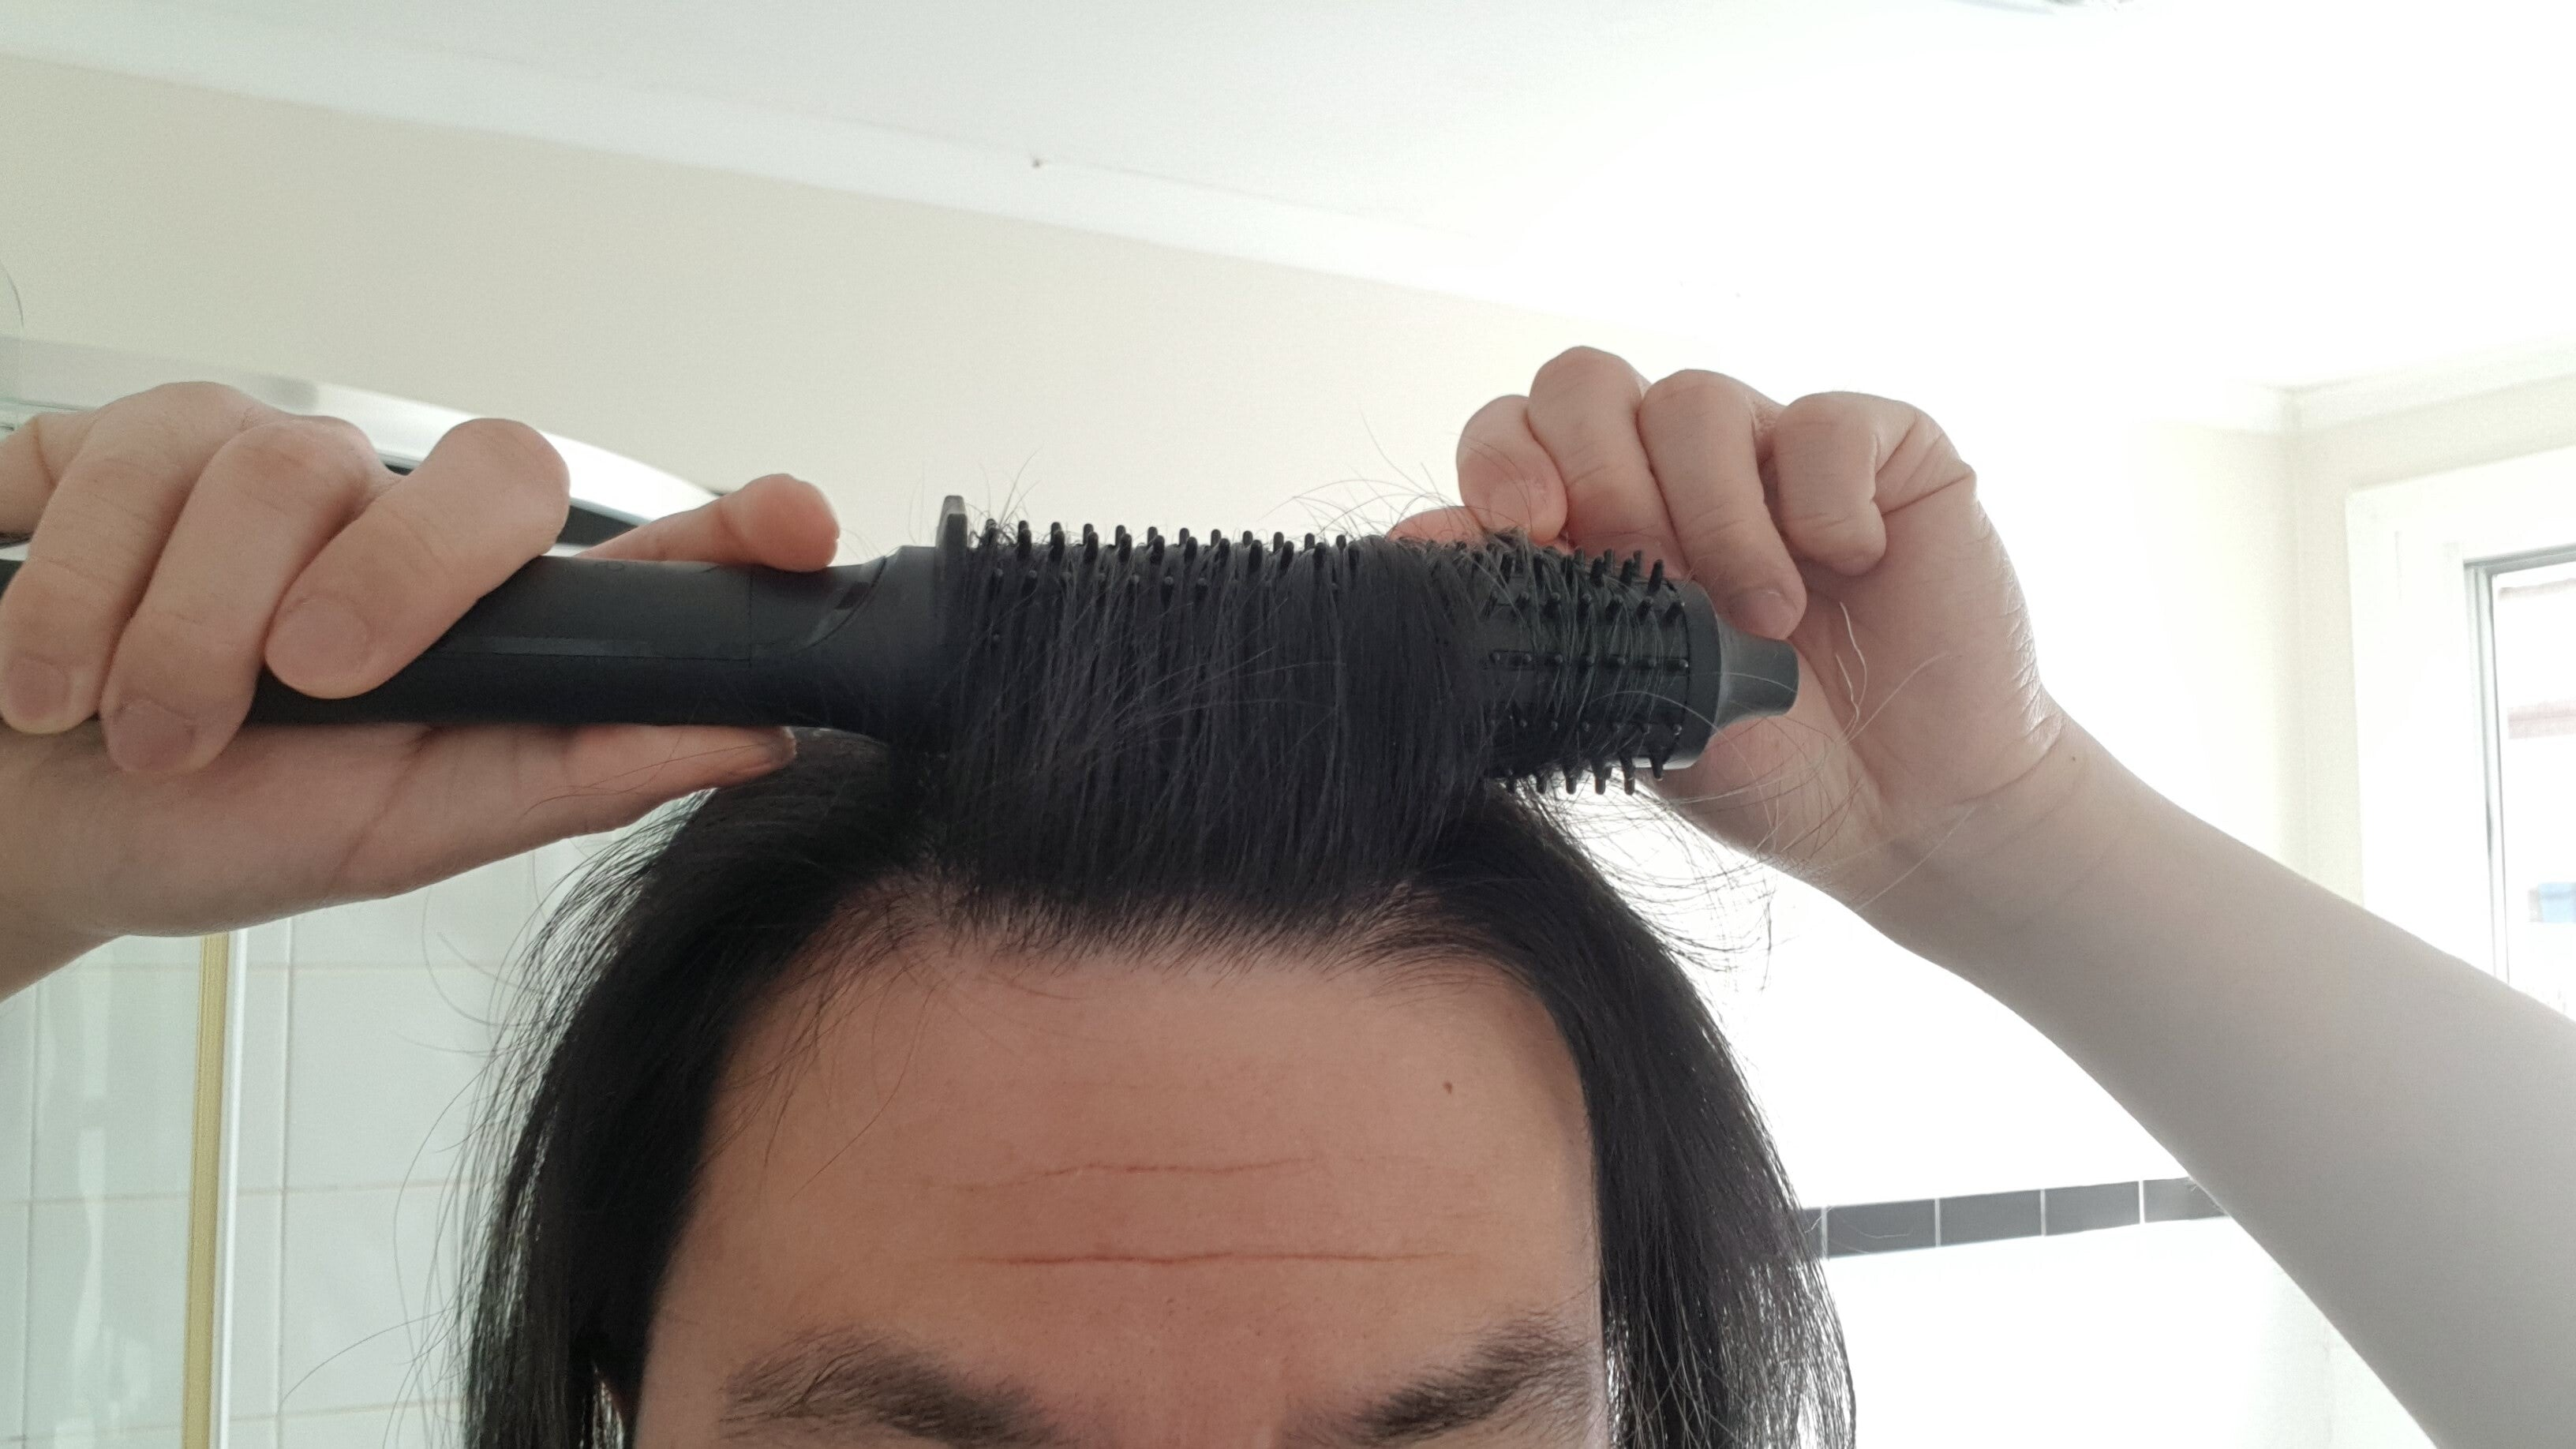 Using the GHD Rise to achieve root lift and volume